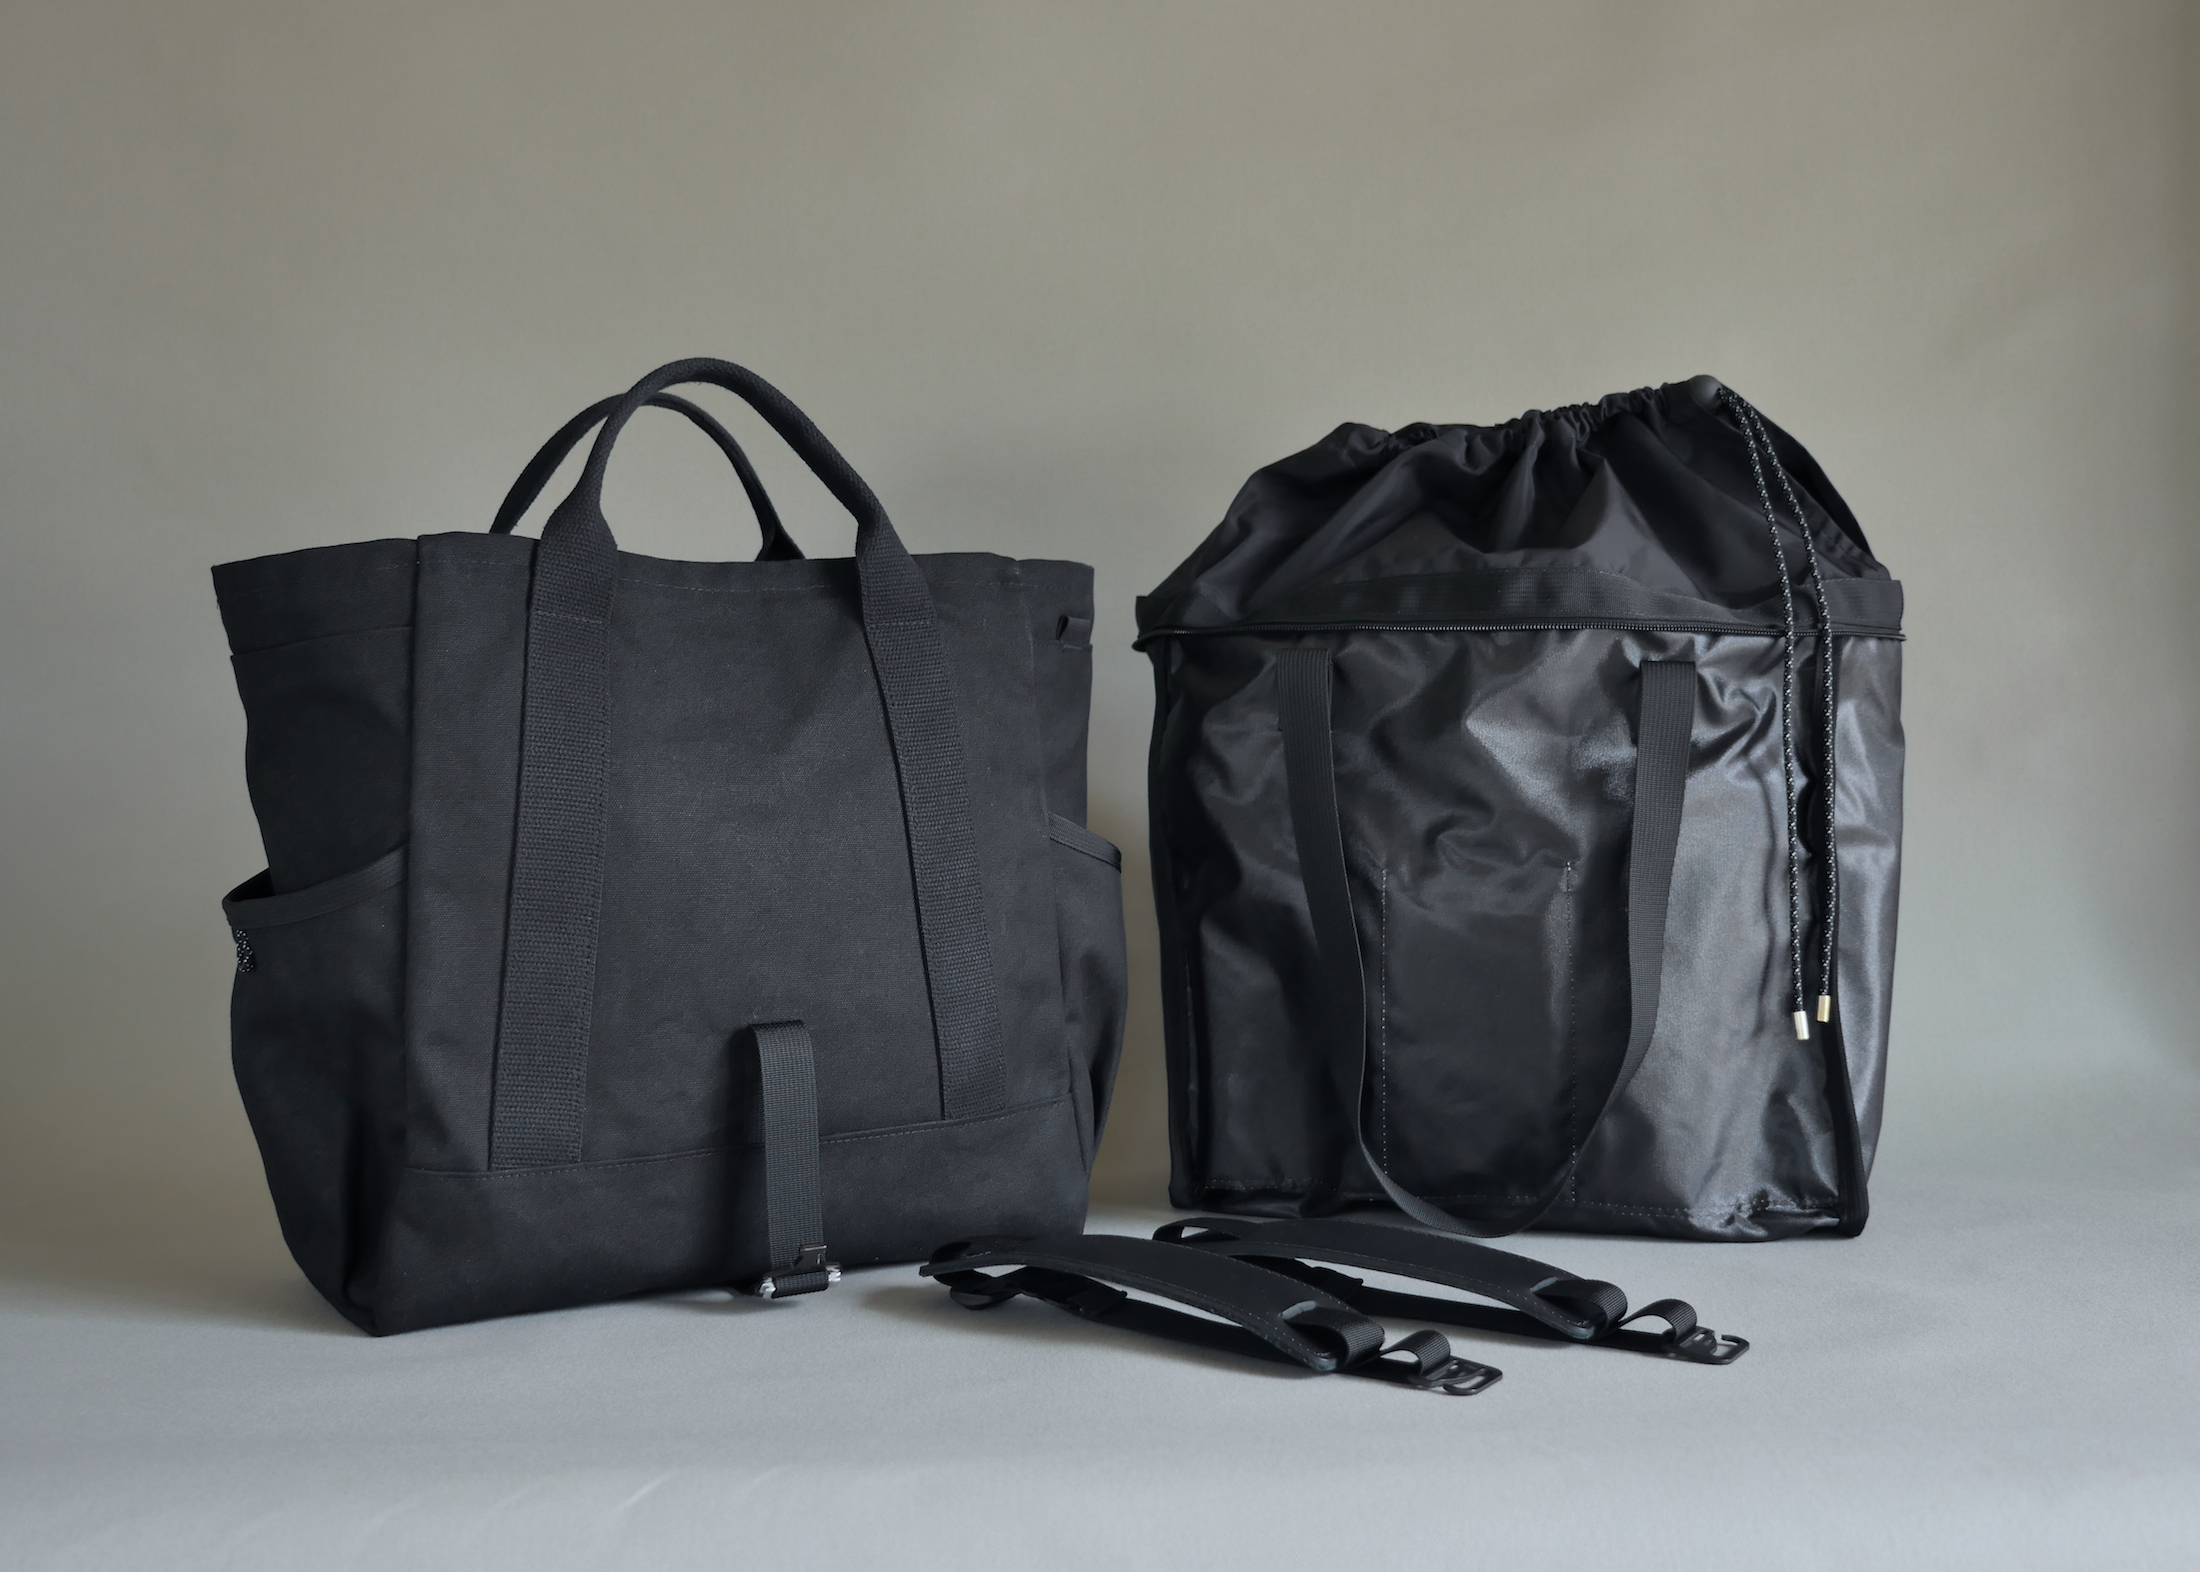 Liner fully removed - two bags in one.